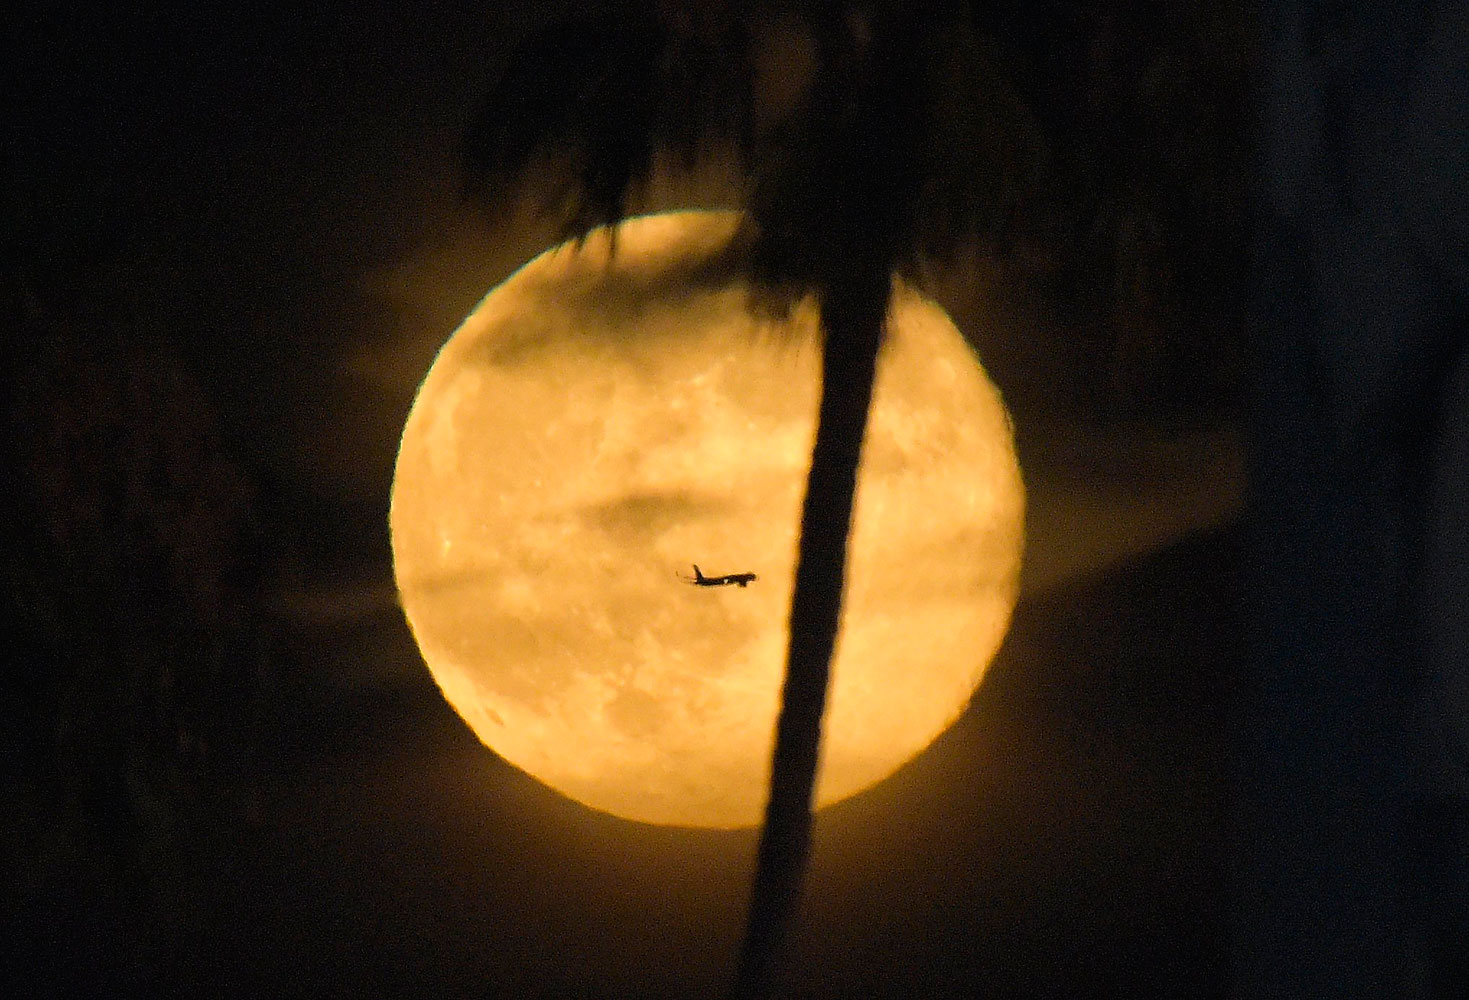 A plane flies pasts a supermoon as a palm tree grows in the foreground during a baseball game between the Los Angeles Dodgers and the San Diego Padres at Dodger Stadium, July 12, 2014, in Los Angeles.